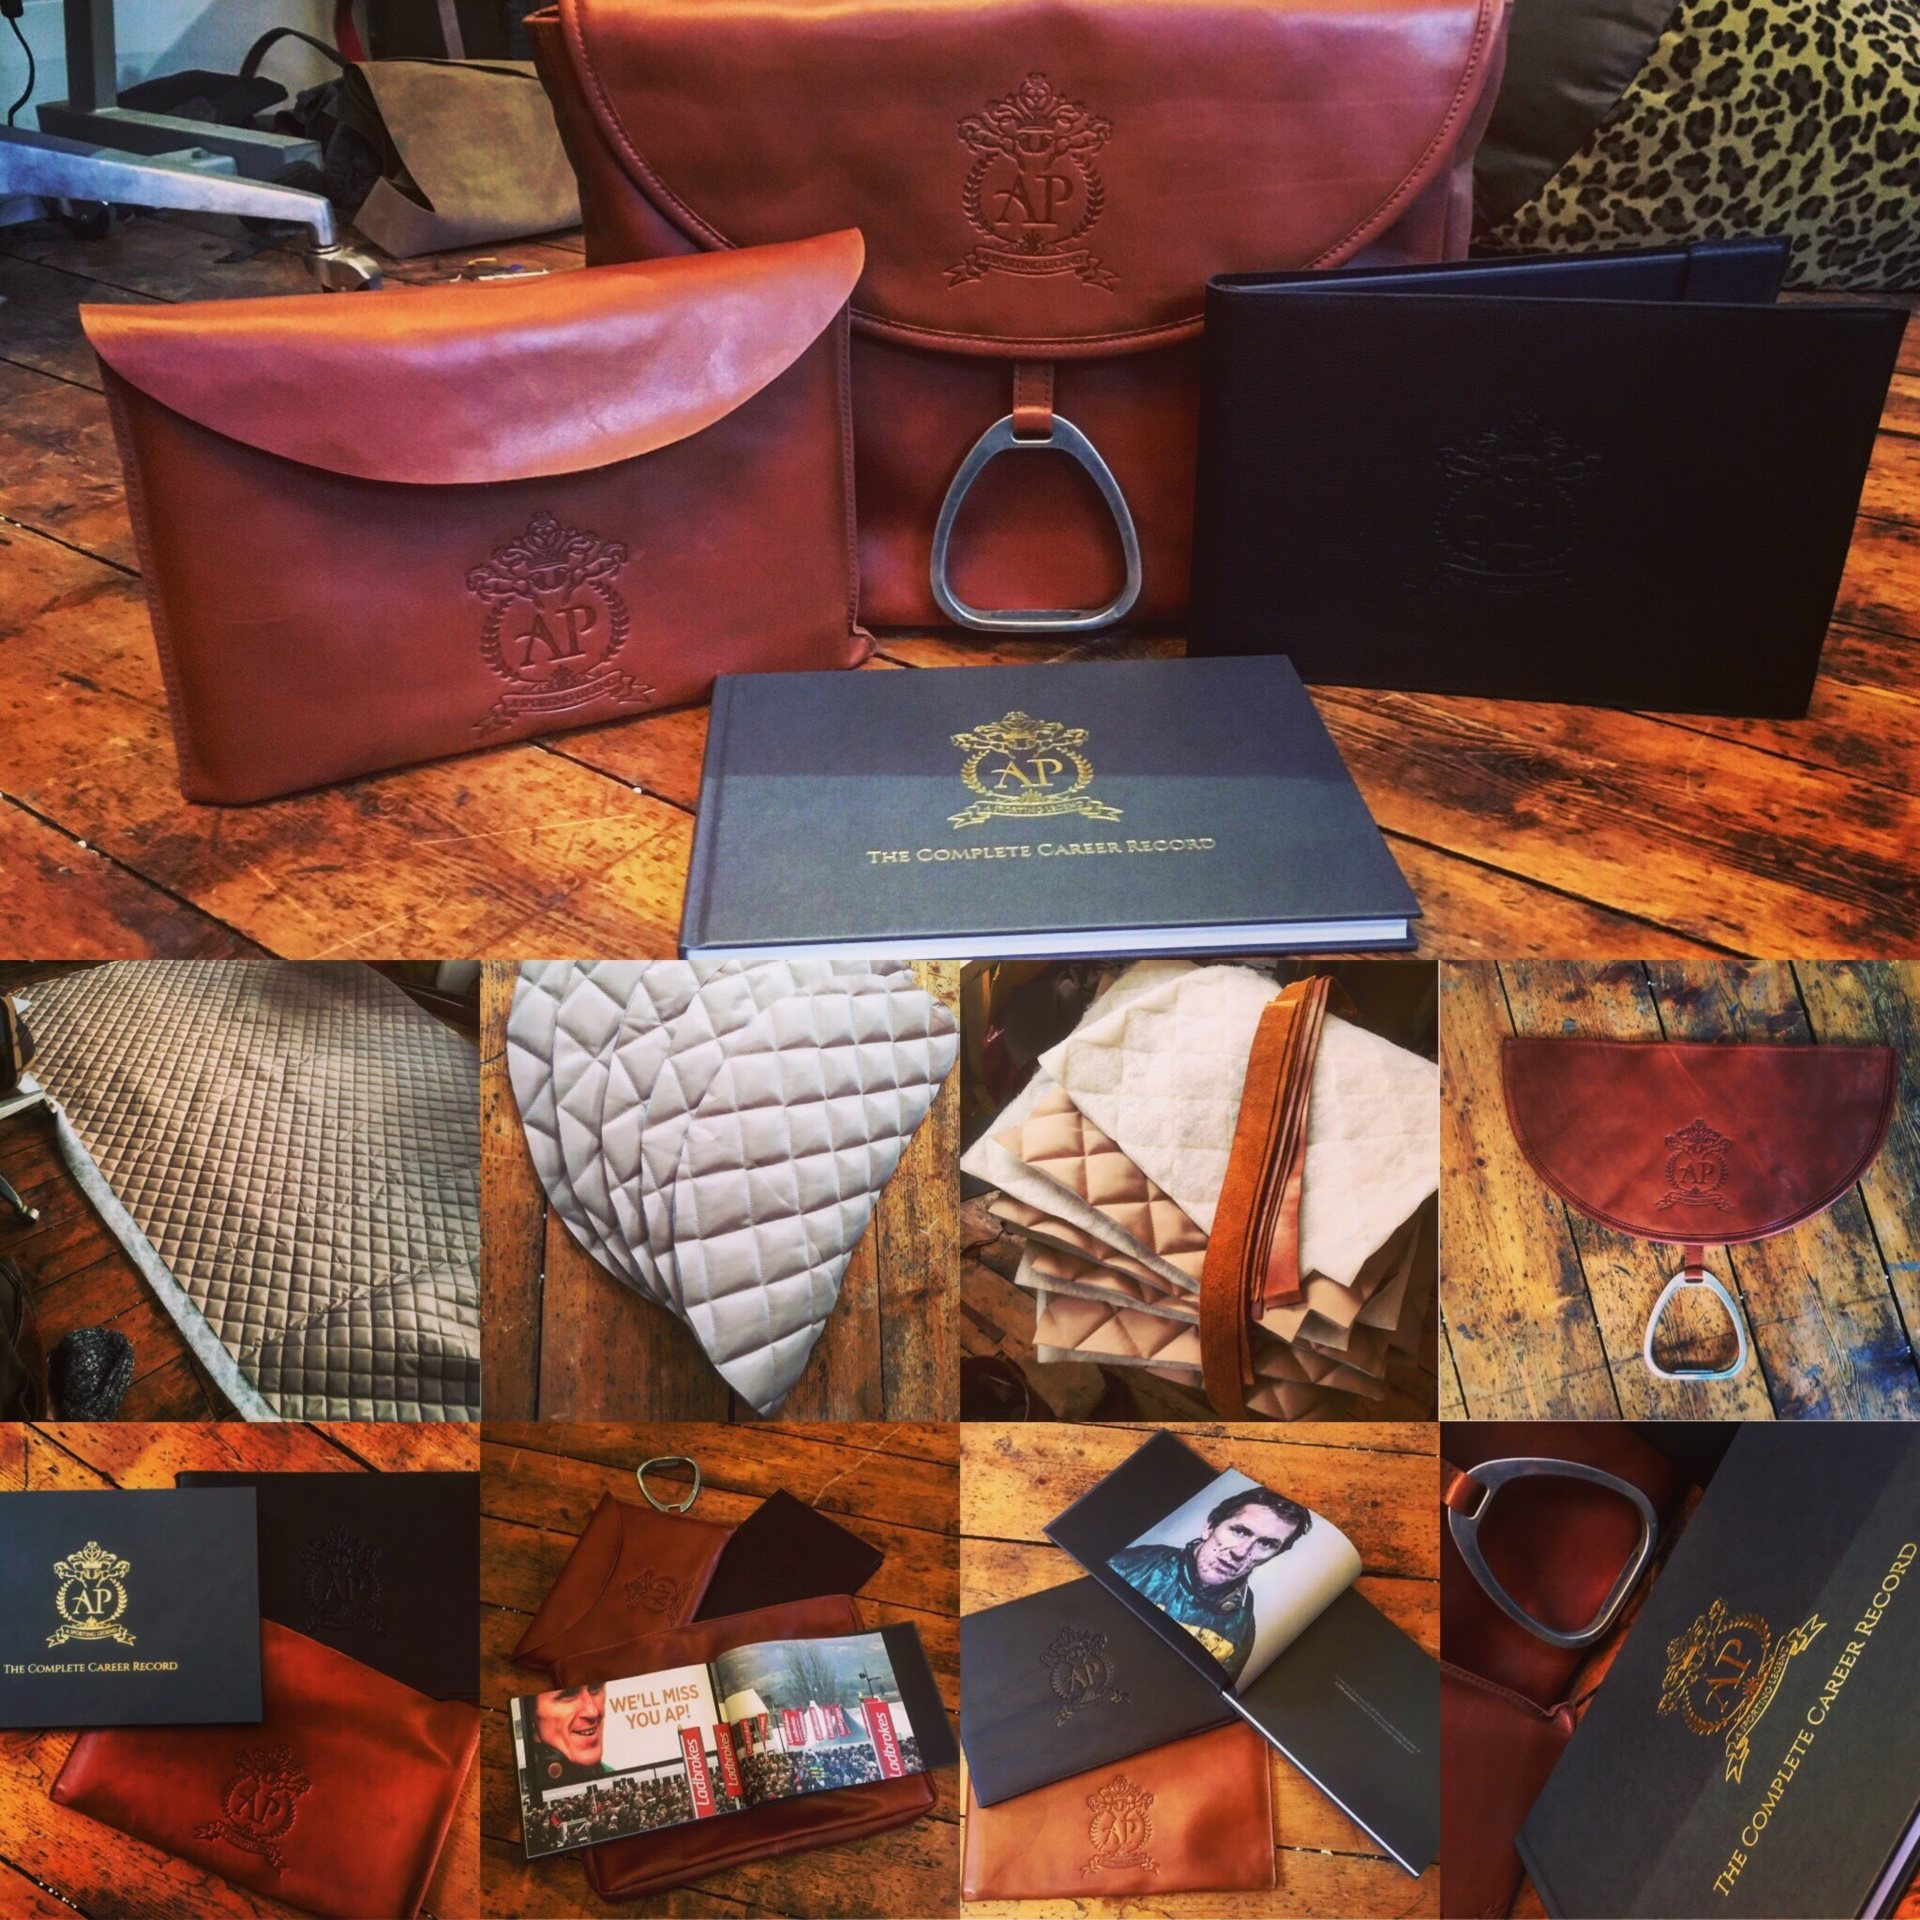 Bespoke Saddle Bags for AP McCoy Book Launch